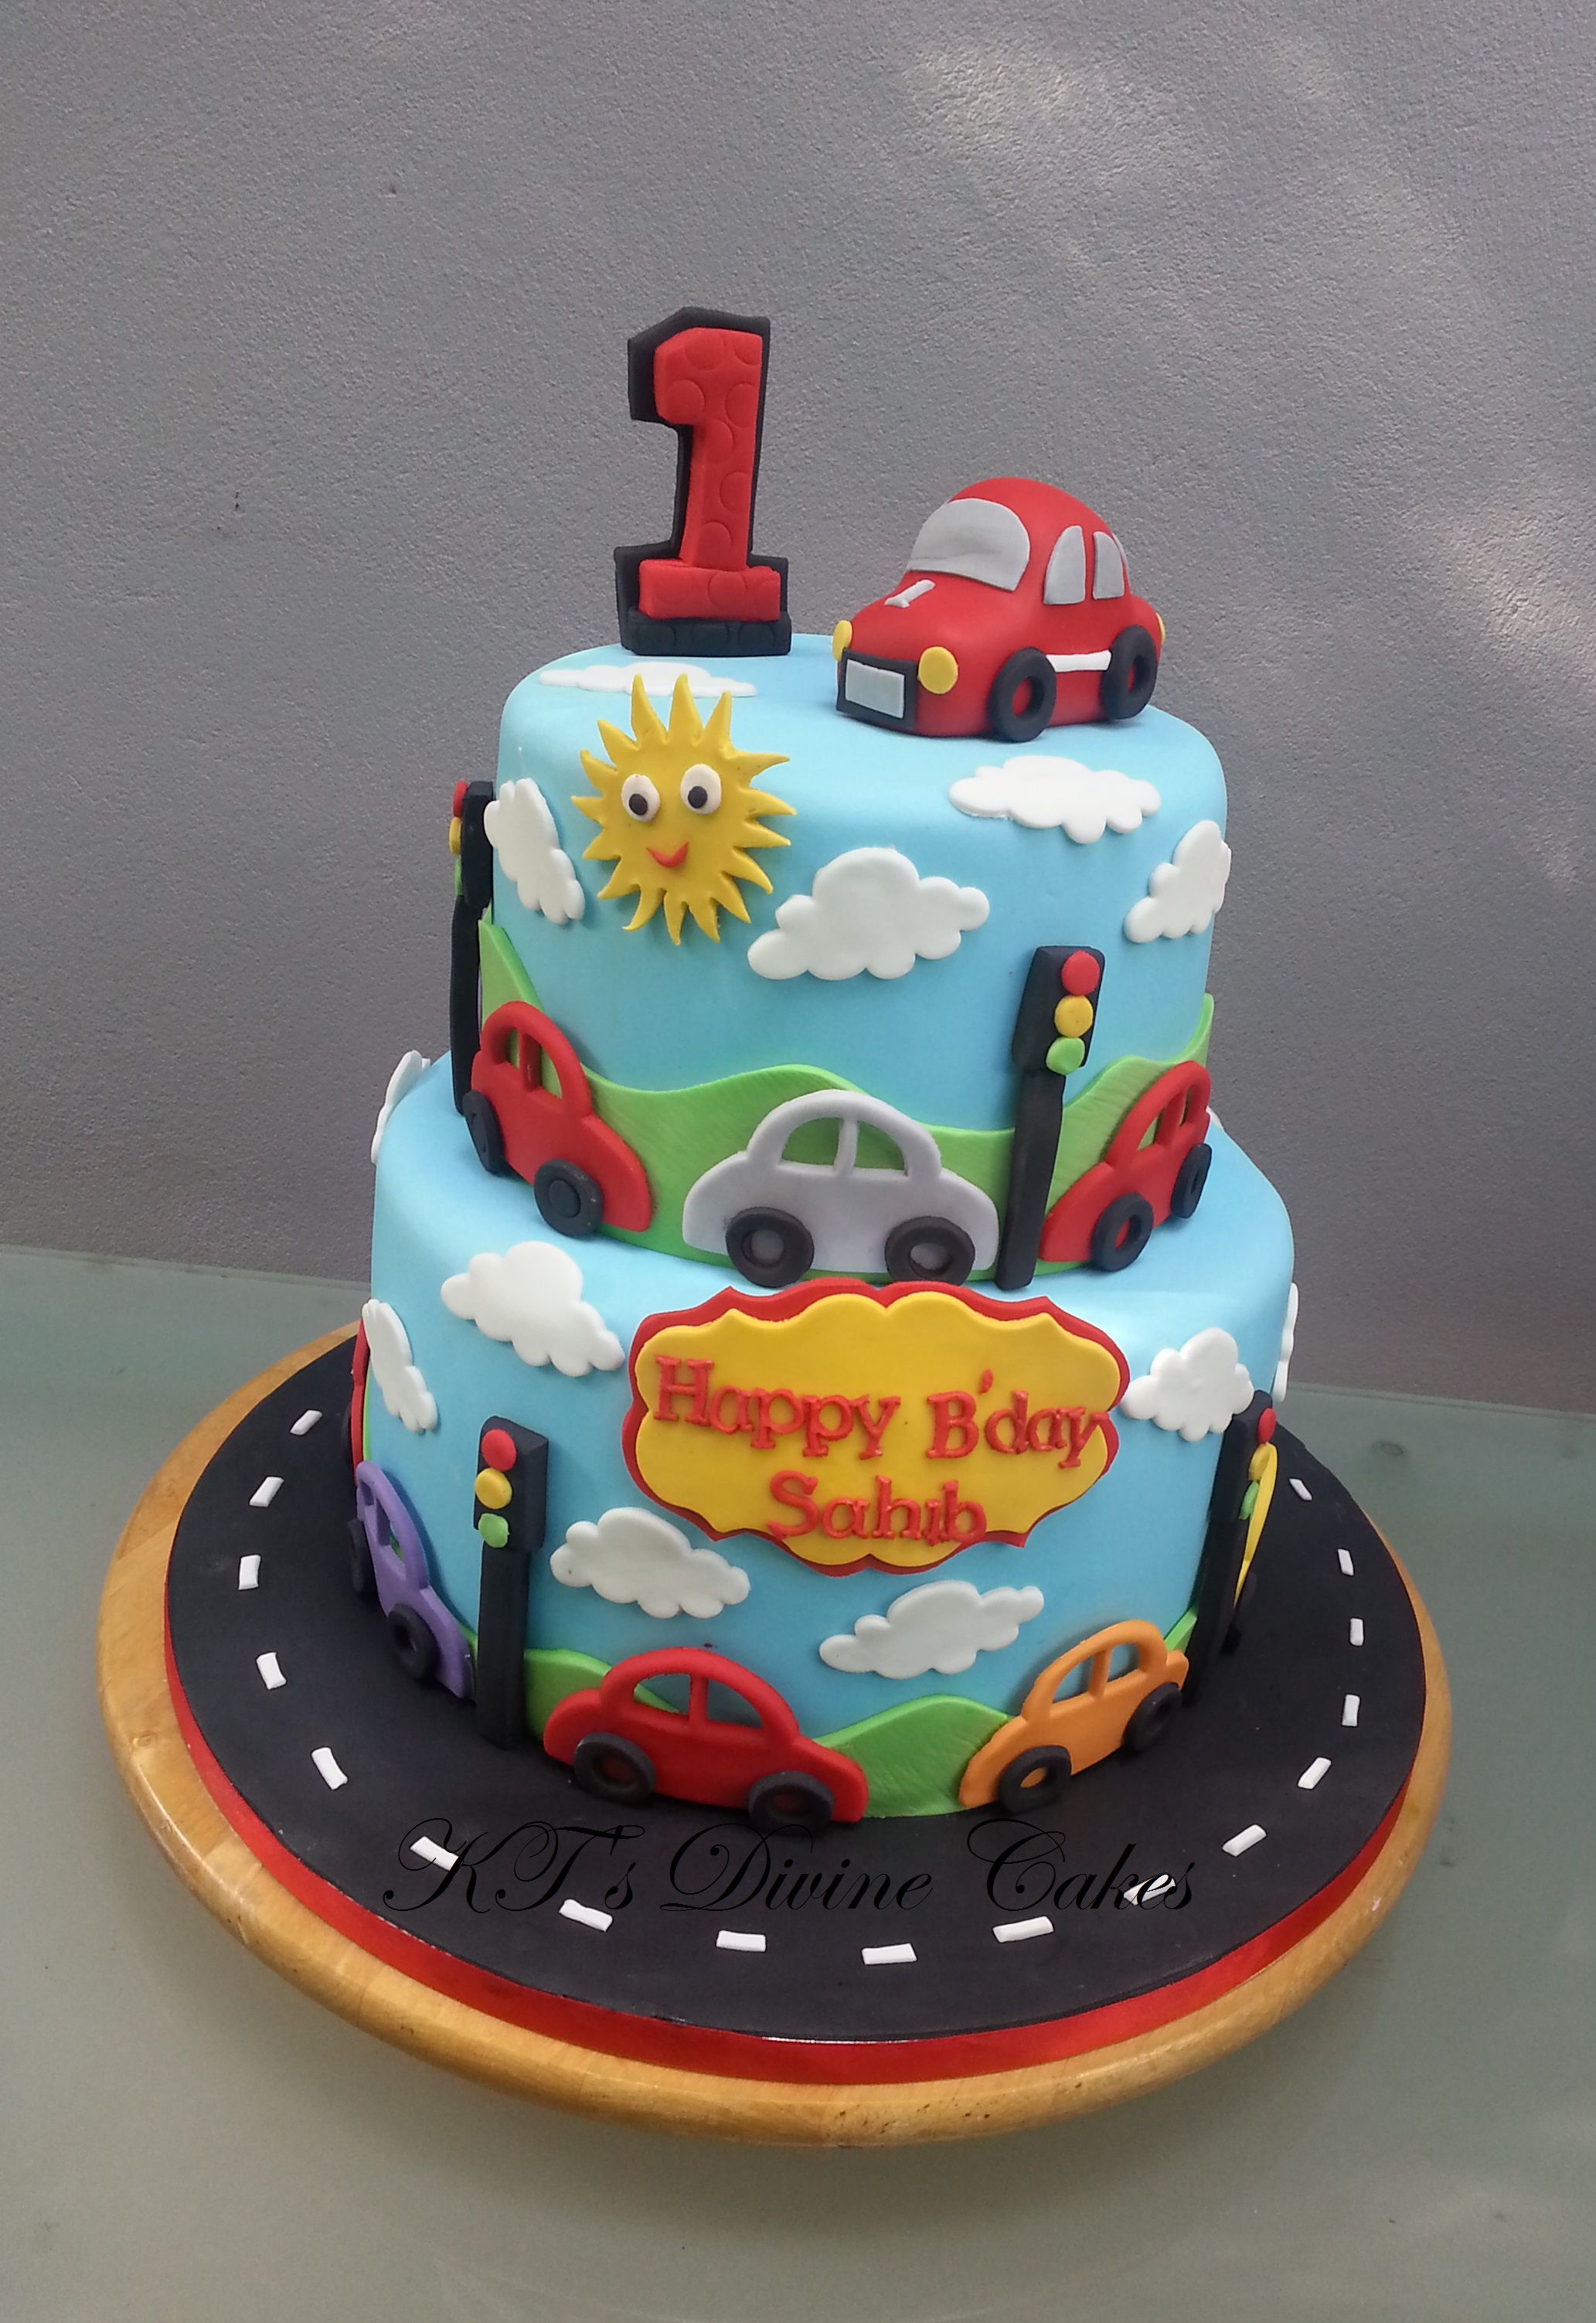 1st Birthday Car Cake Everything Sweeet Pinterest Car cakes